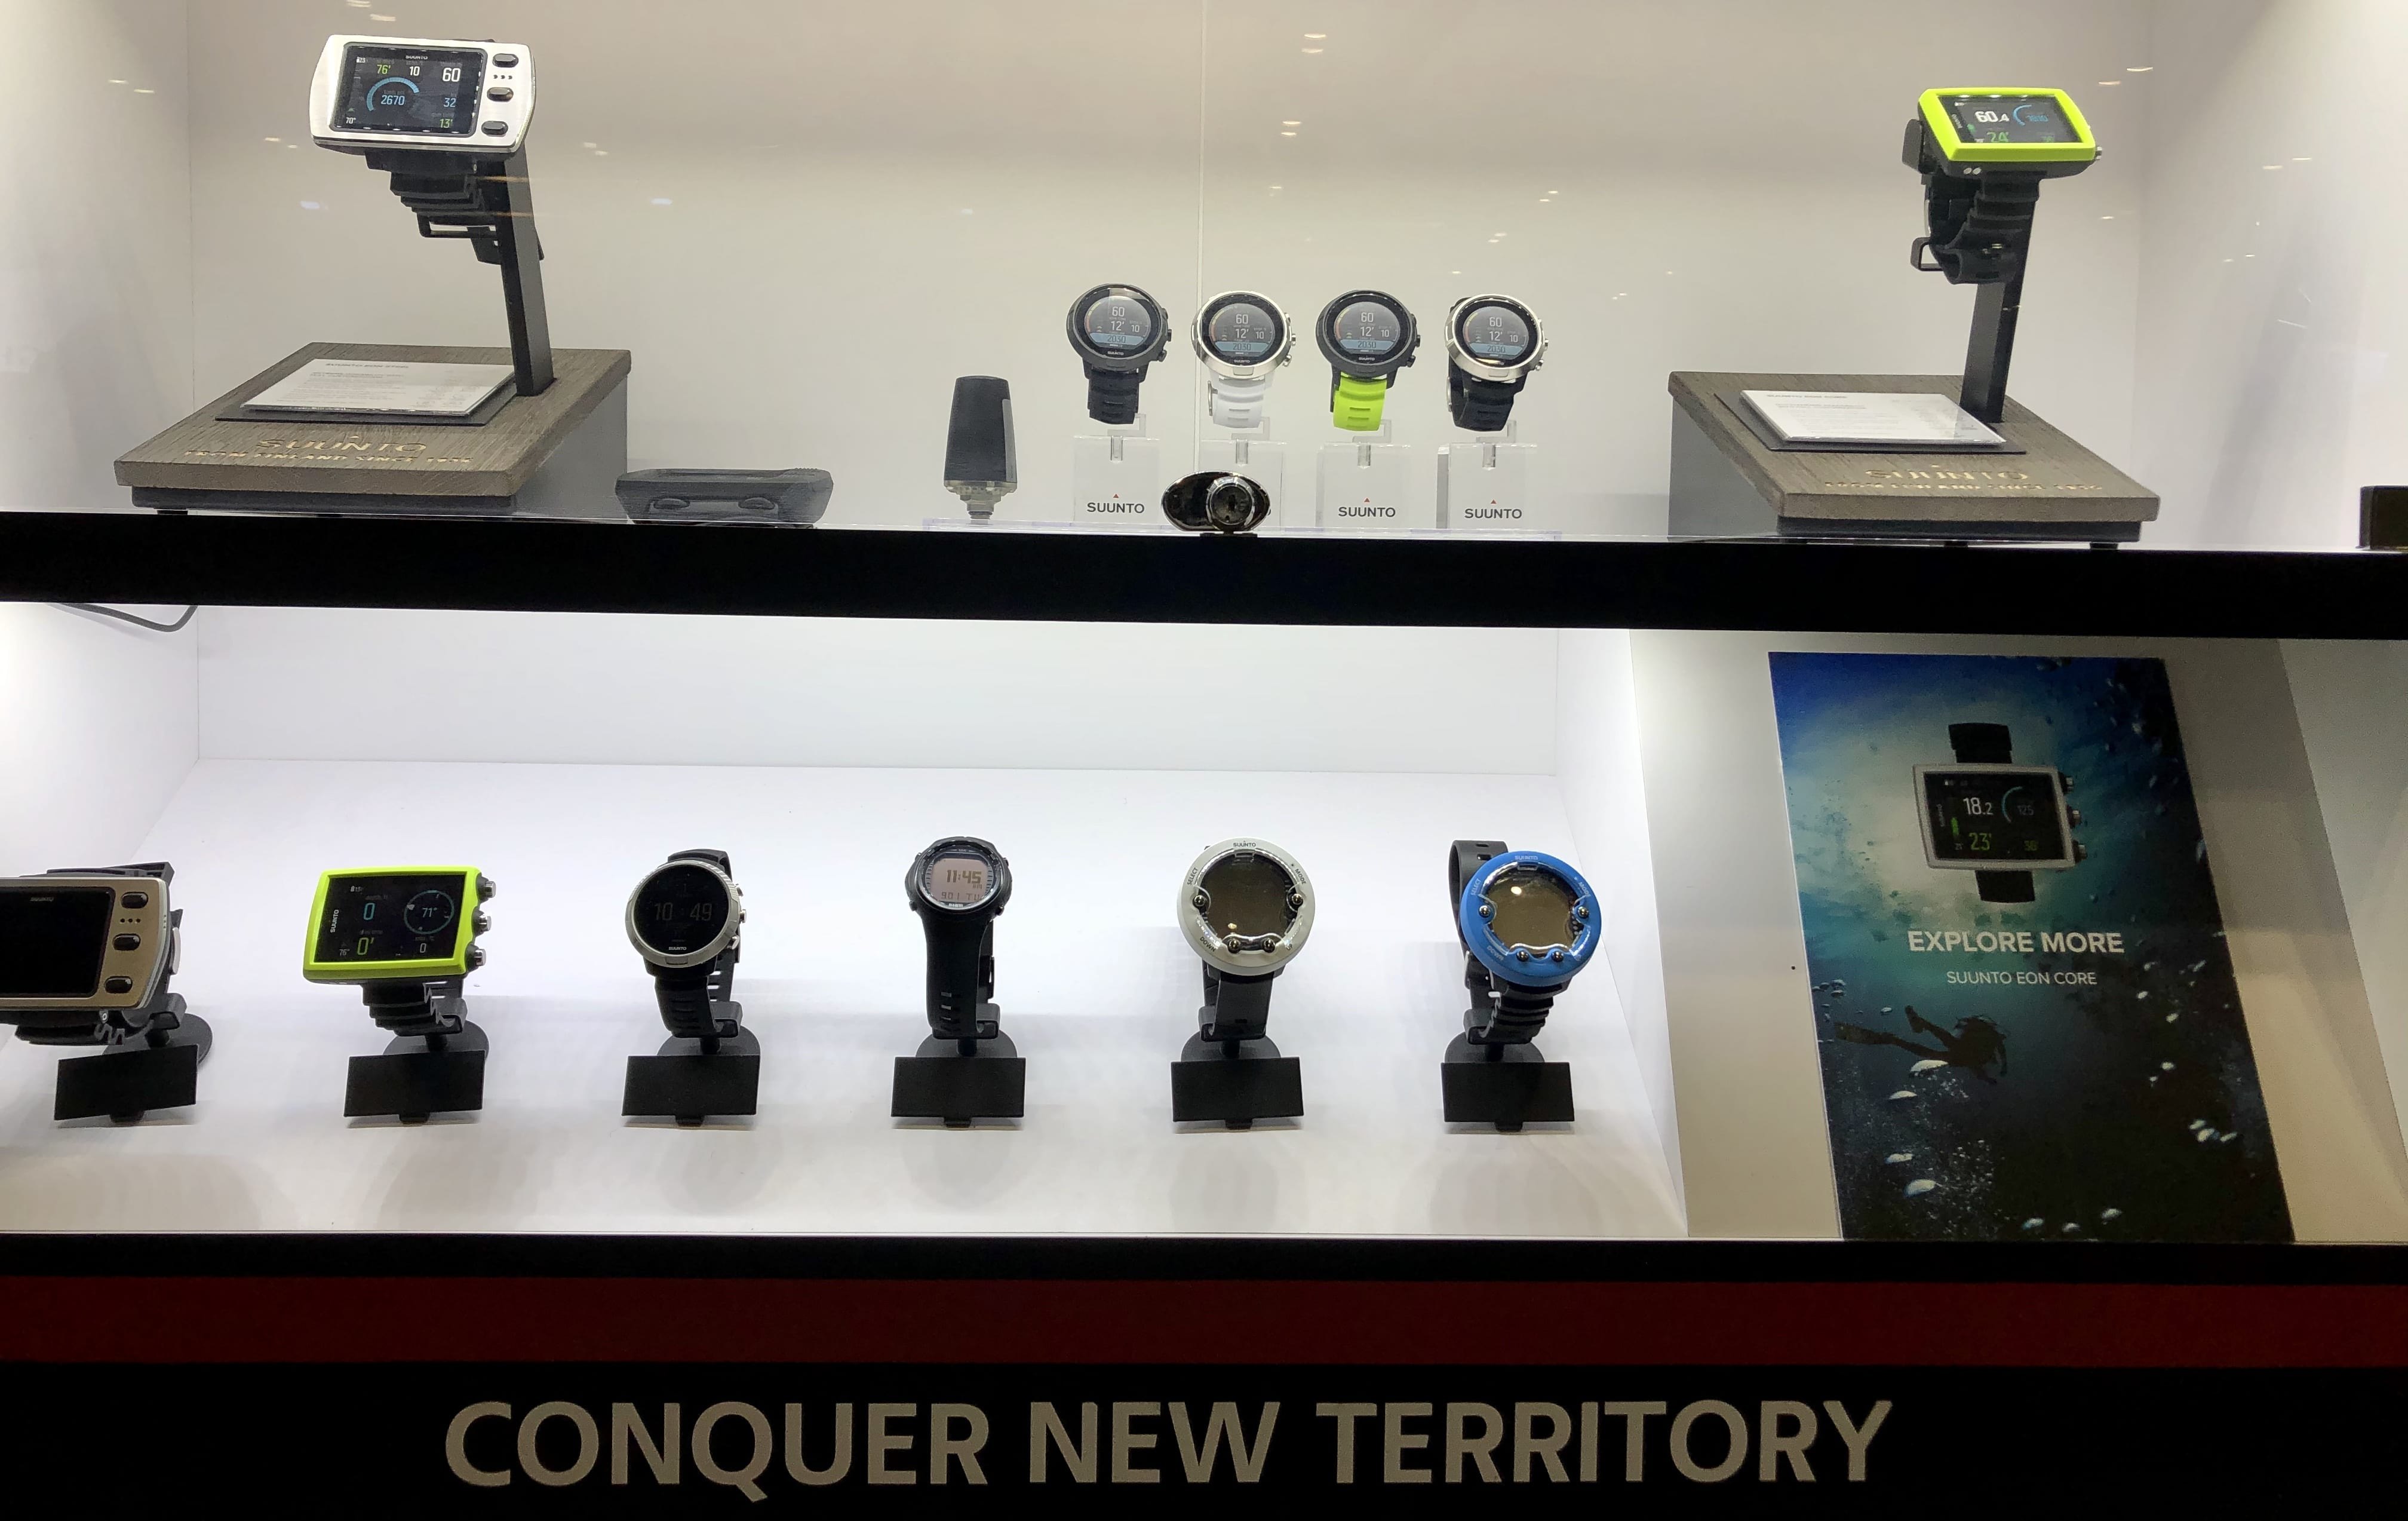 The folks at Suunto are highlighting the full range of the company's dive products this year at DEMA Show, following the launch of the Suunto D5 last year.